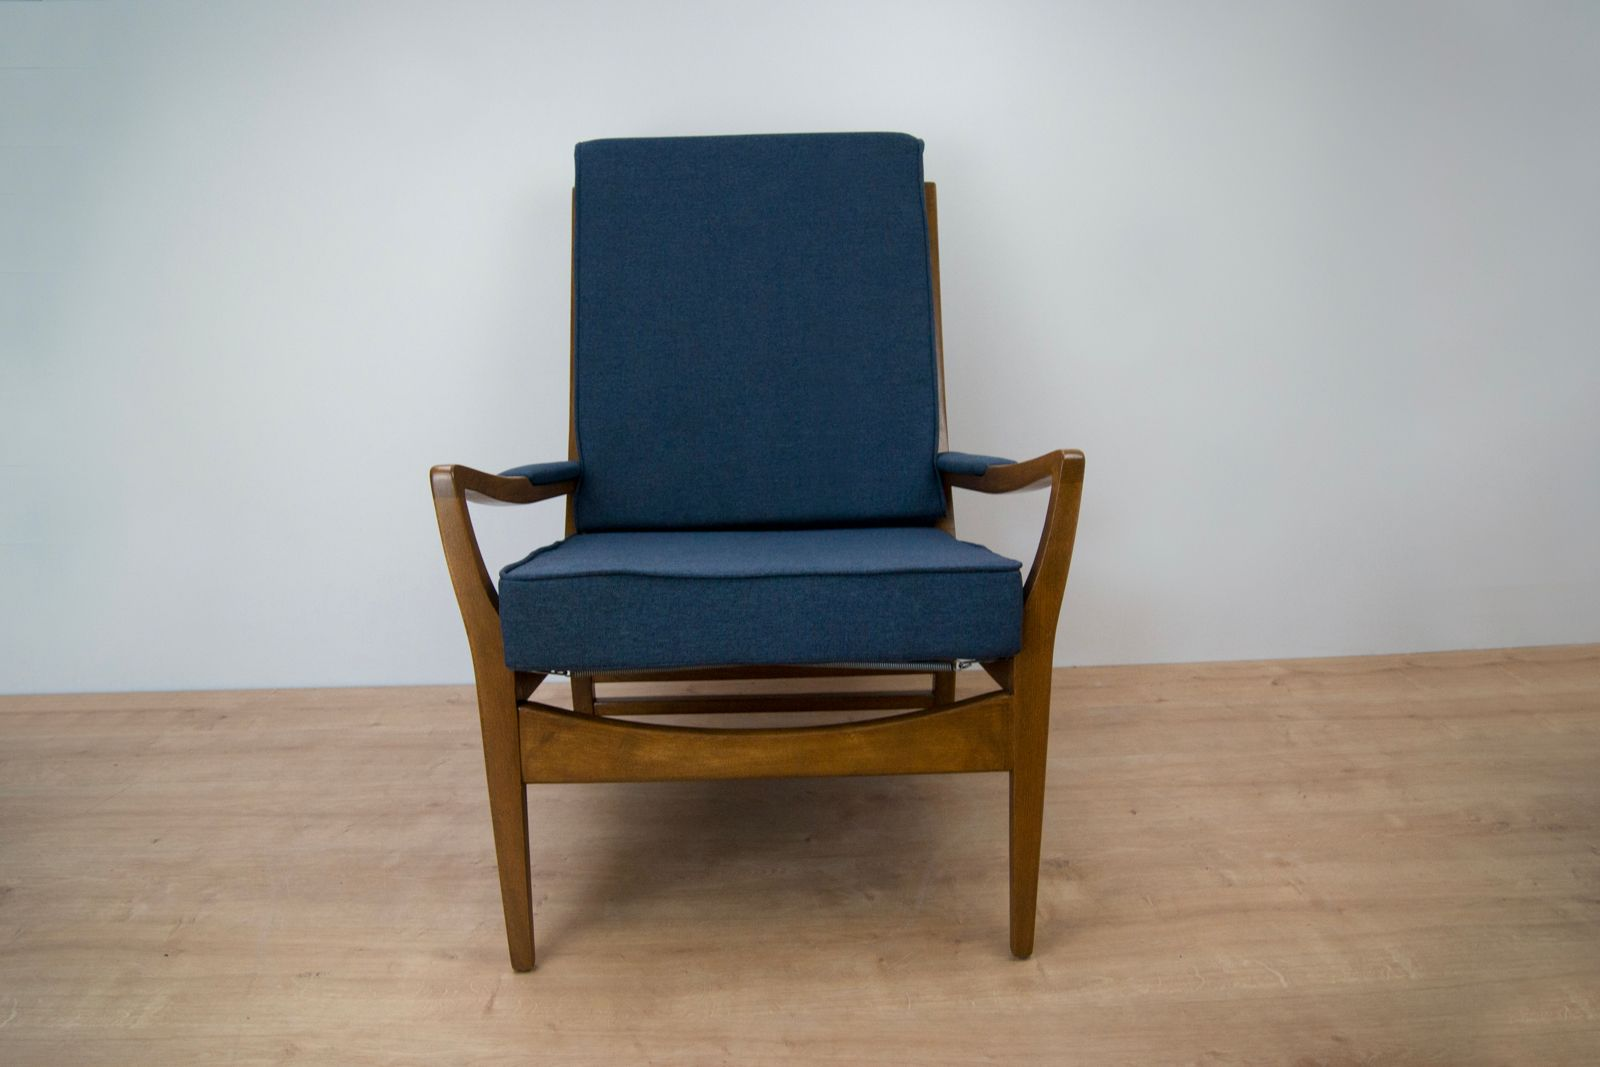 Vintage navy blue armchair from parker knoll 1960s set of 2